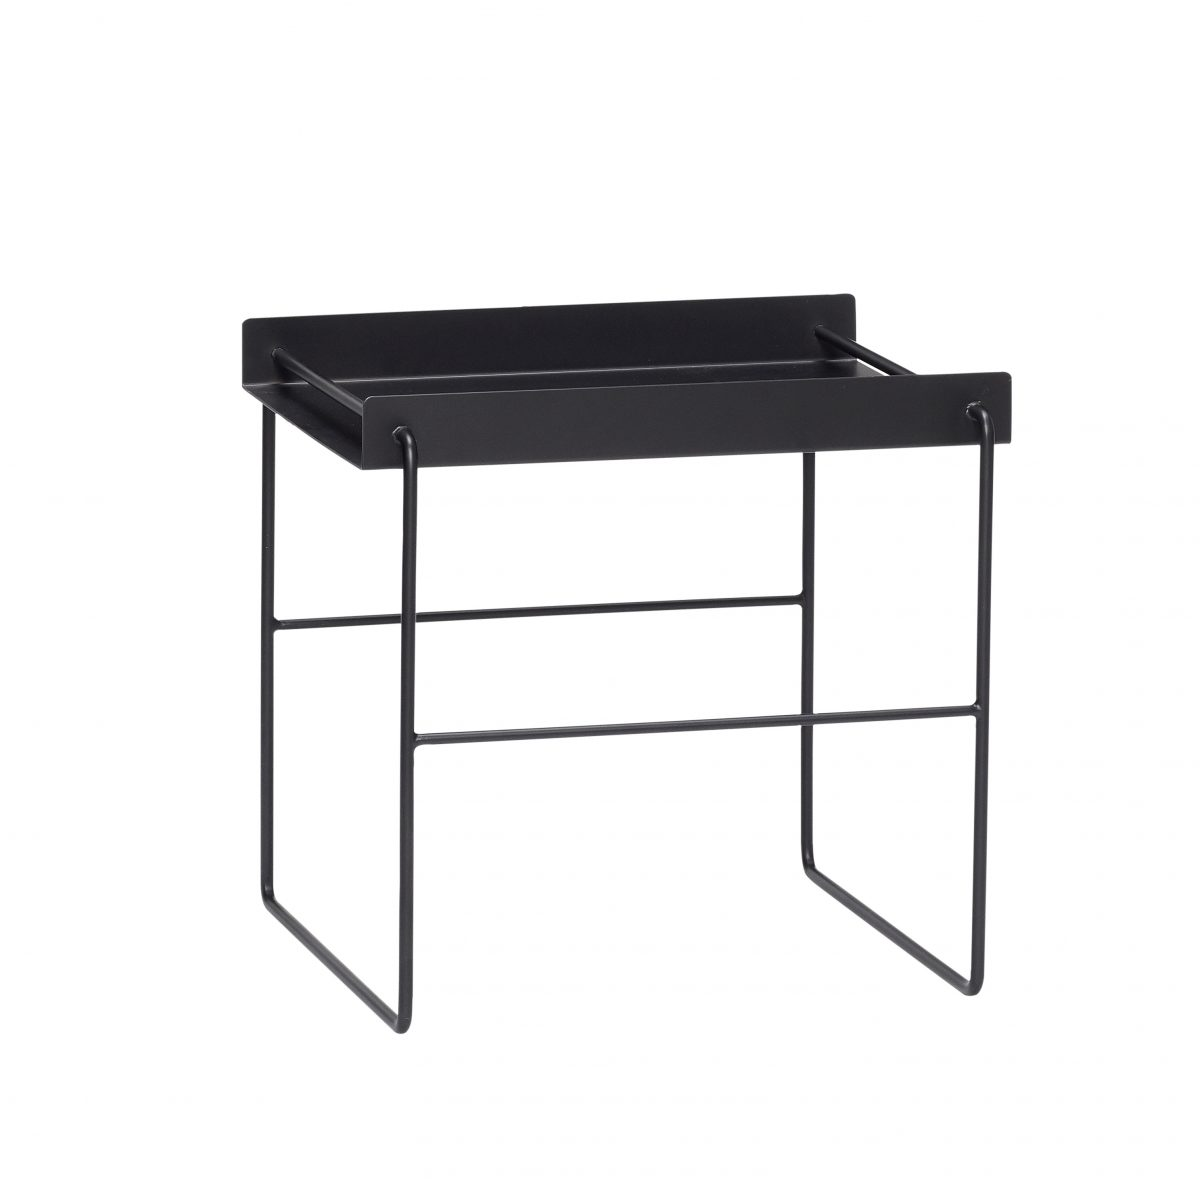 em_home-hubsch-black-metal-square-tray-table-home-decor-homeware-coffee-890511